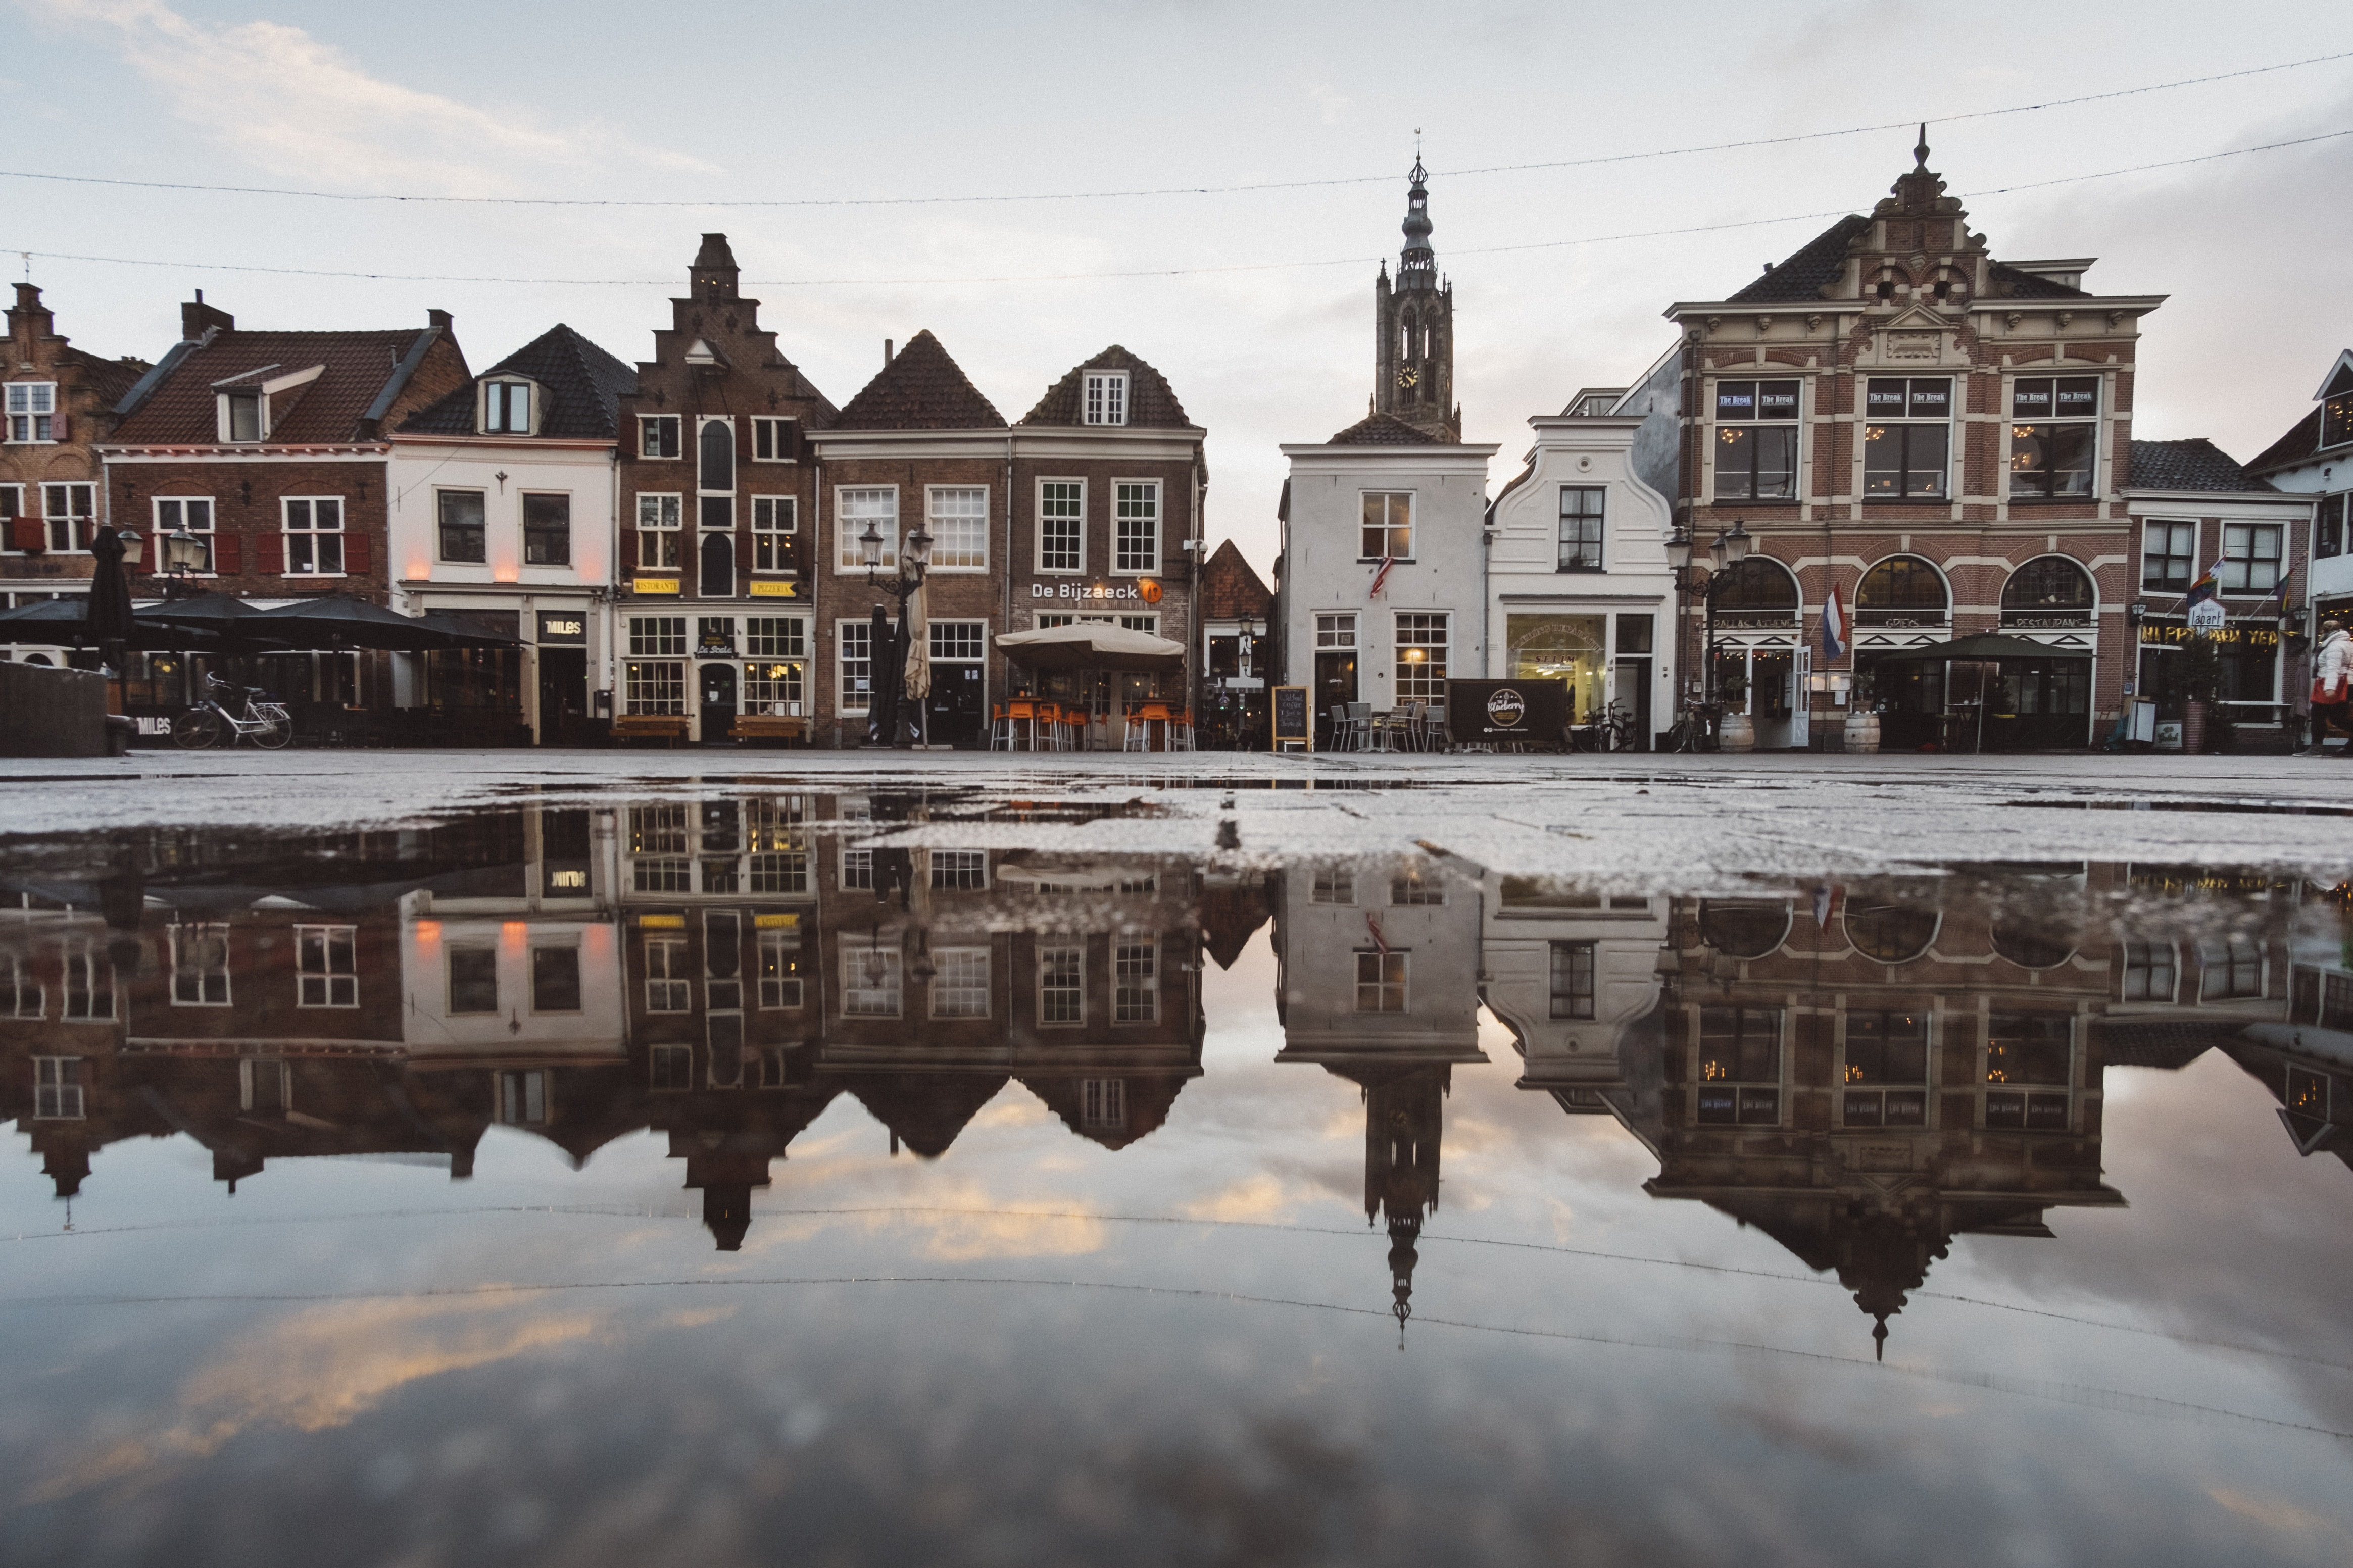 Beautiful puddle reflection of a small artisan town in Europe.